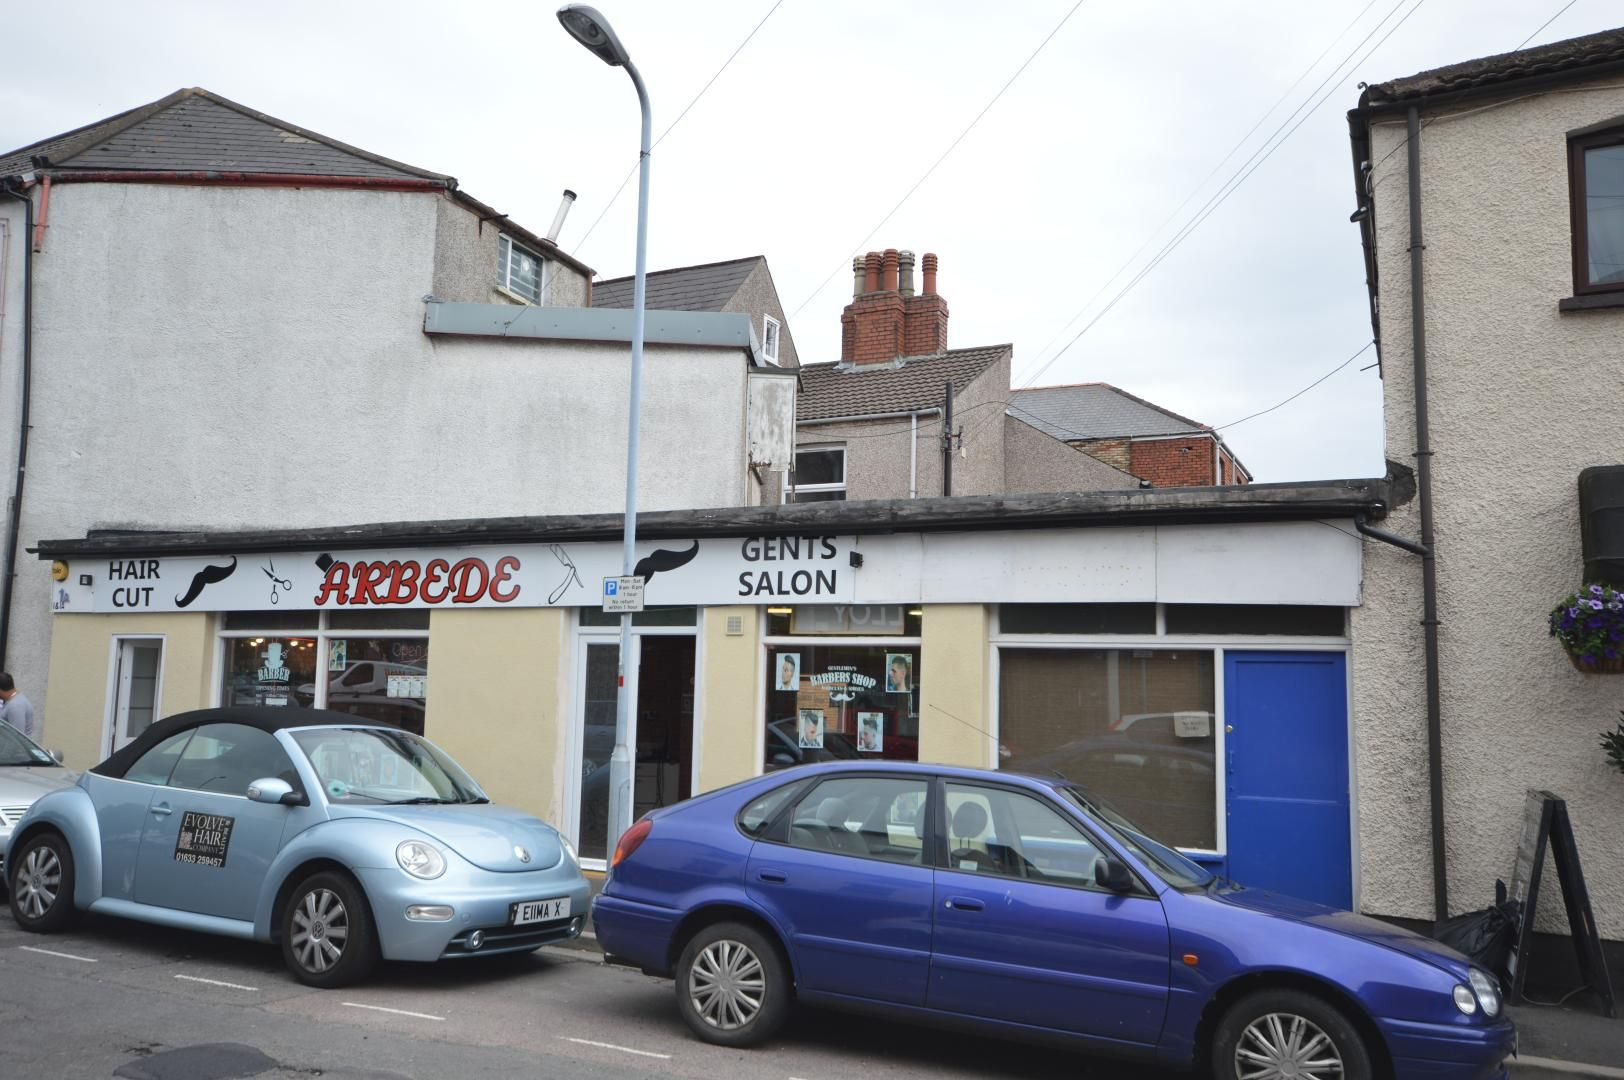 for sale in Speke Street - Property Image 1